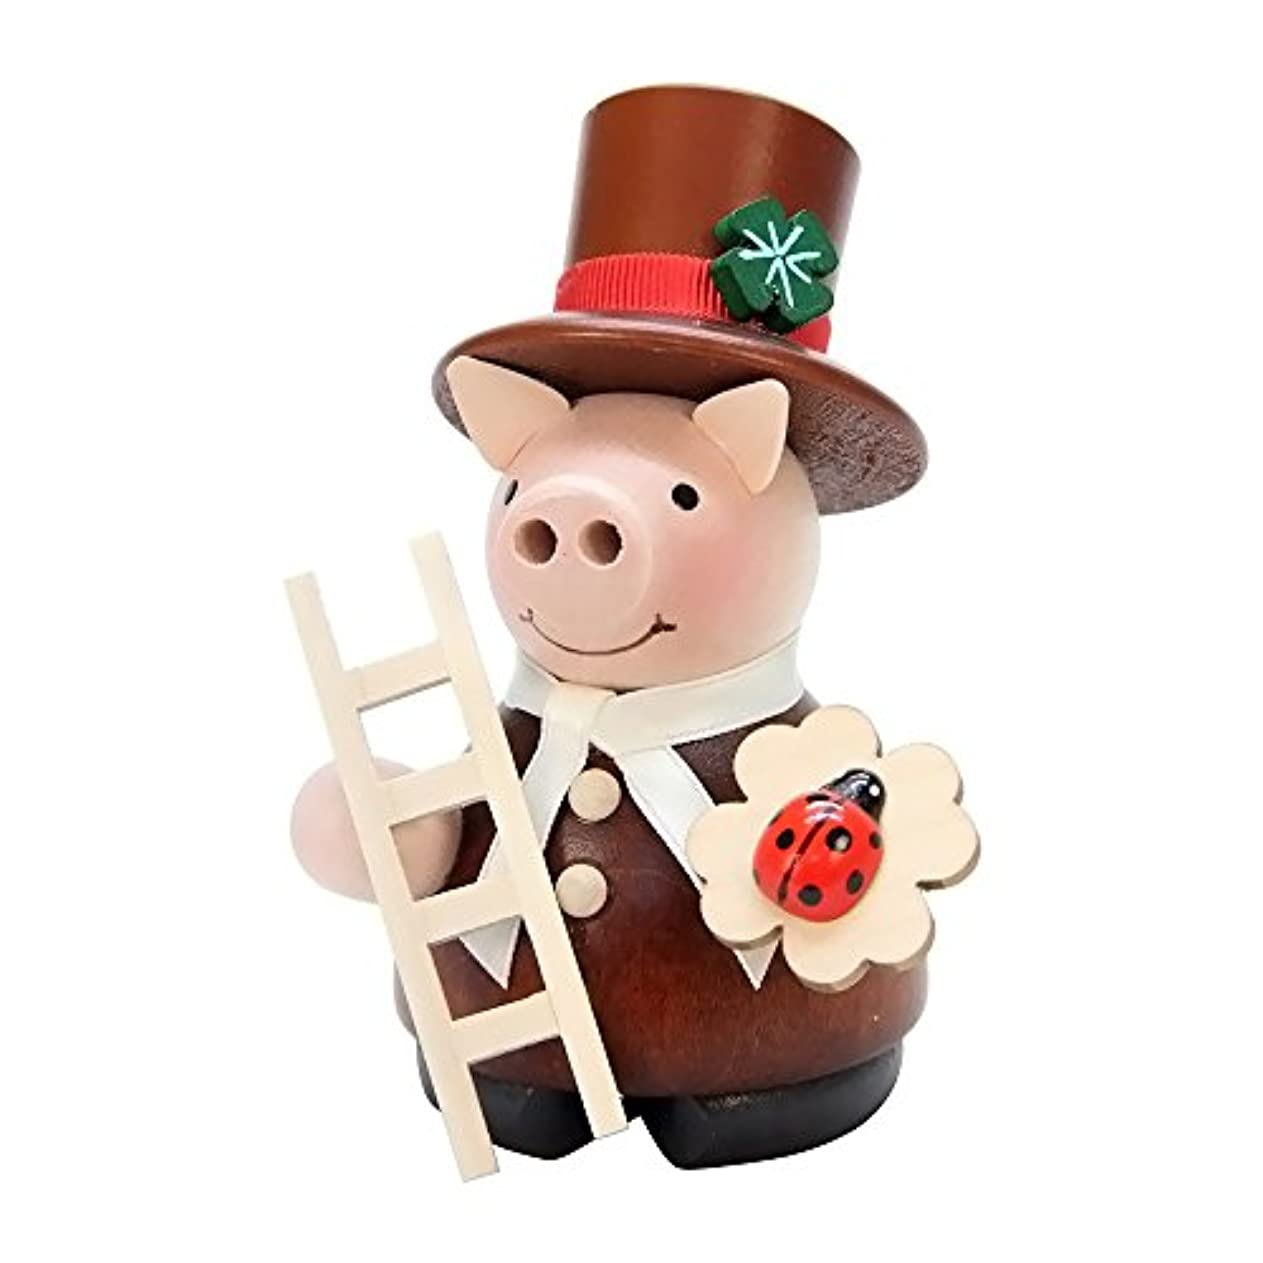 バラエティディスパッチネット(One size, Multi) - Christian Ulbricht Incense Burner - Lucky Pig Chimney Sweep - 4.5H x 3W x 3D